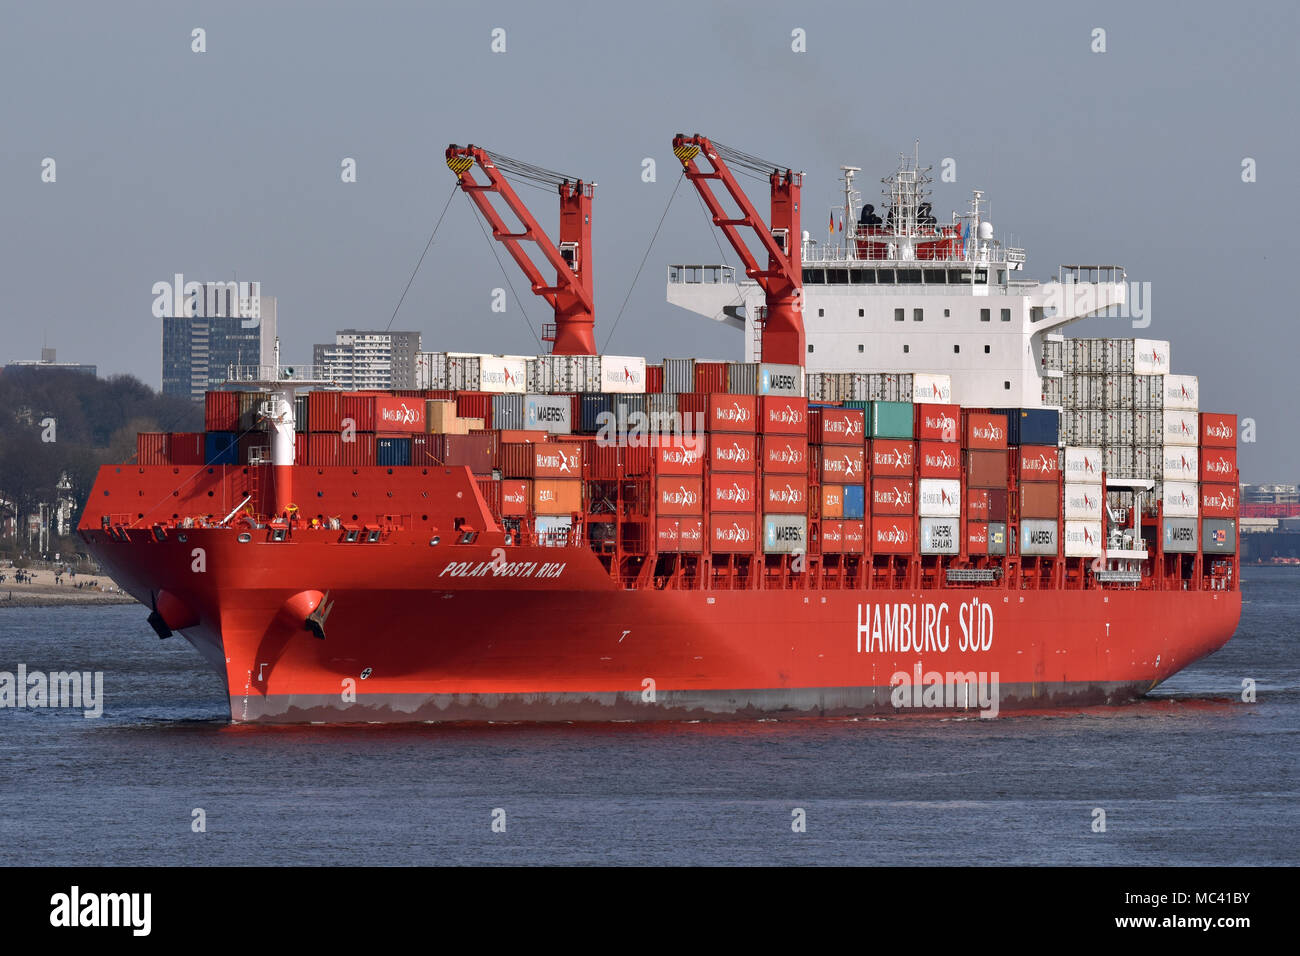 Reefer Containervessel Polar Costa Rica outbount from Hamburg, maiden callStock Photo